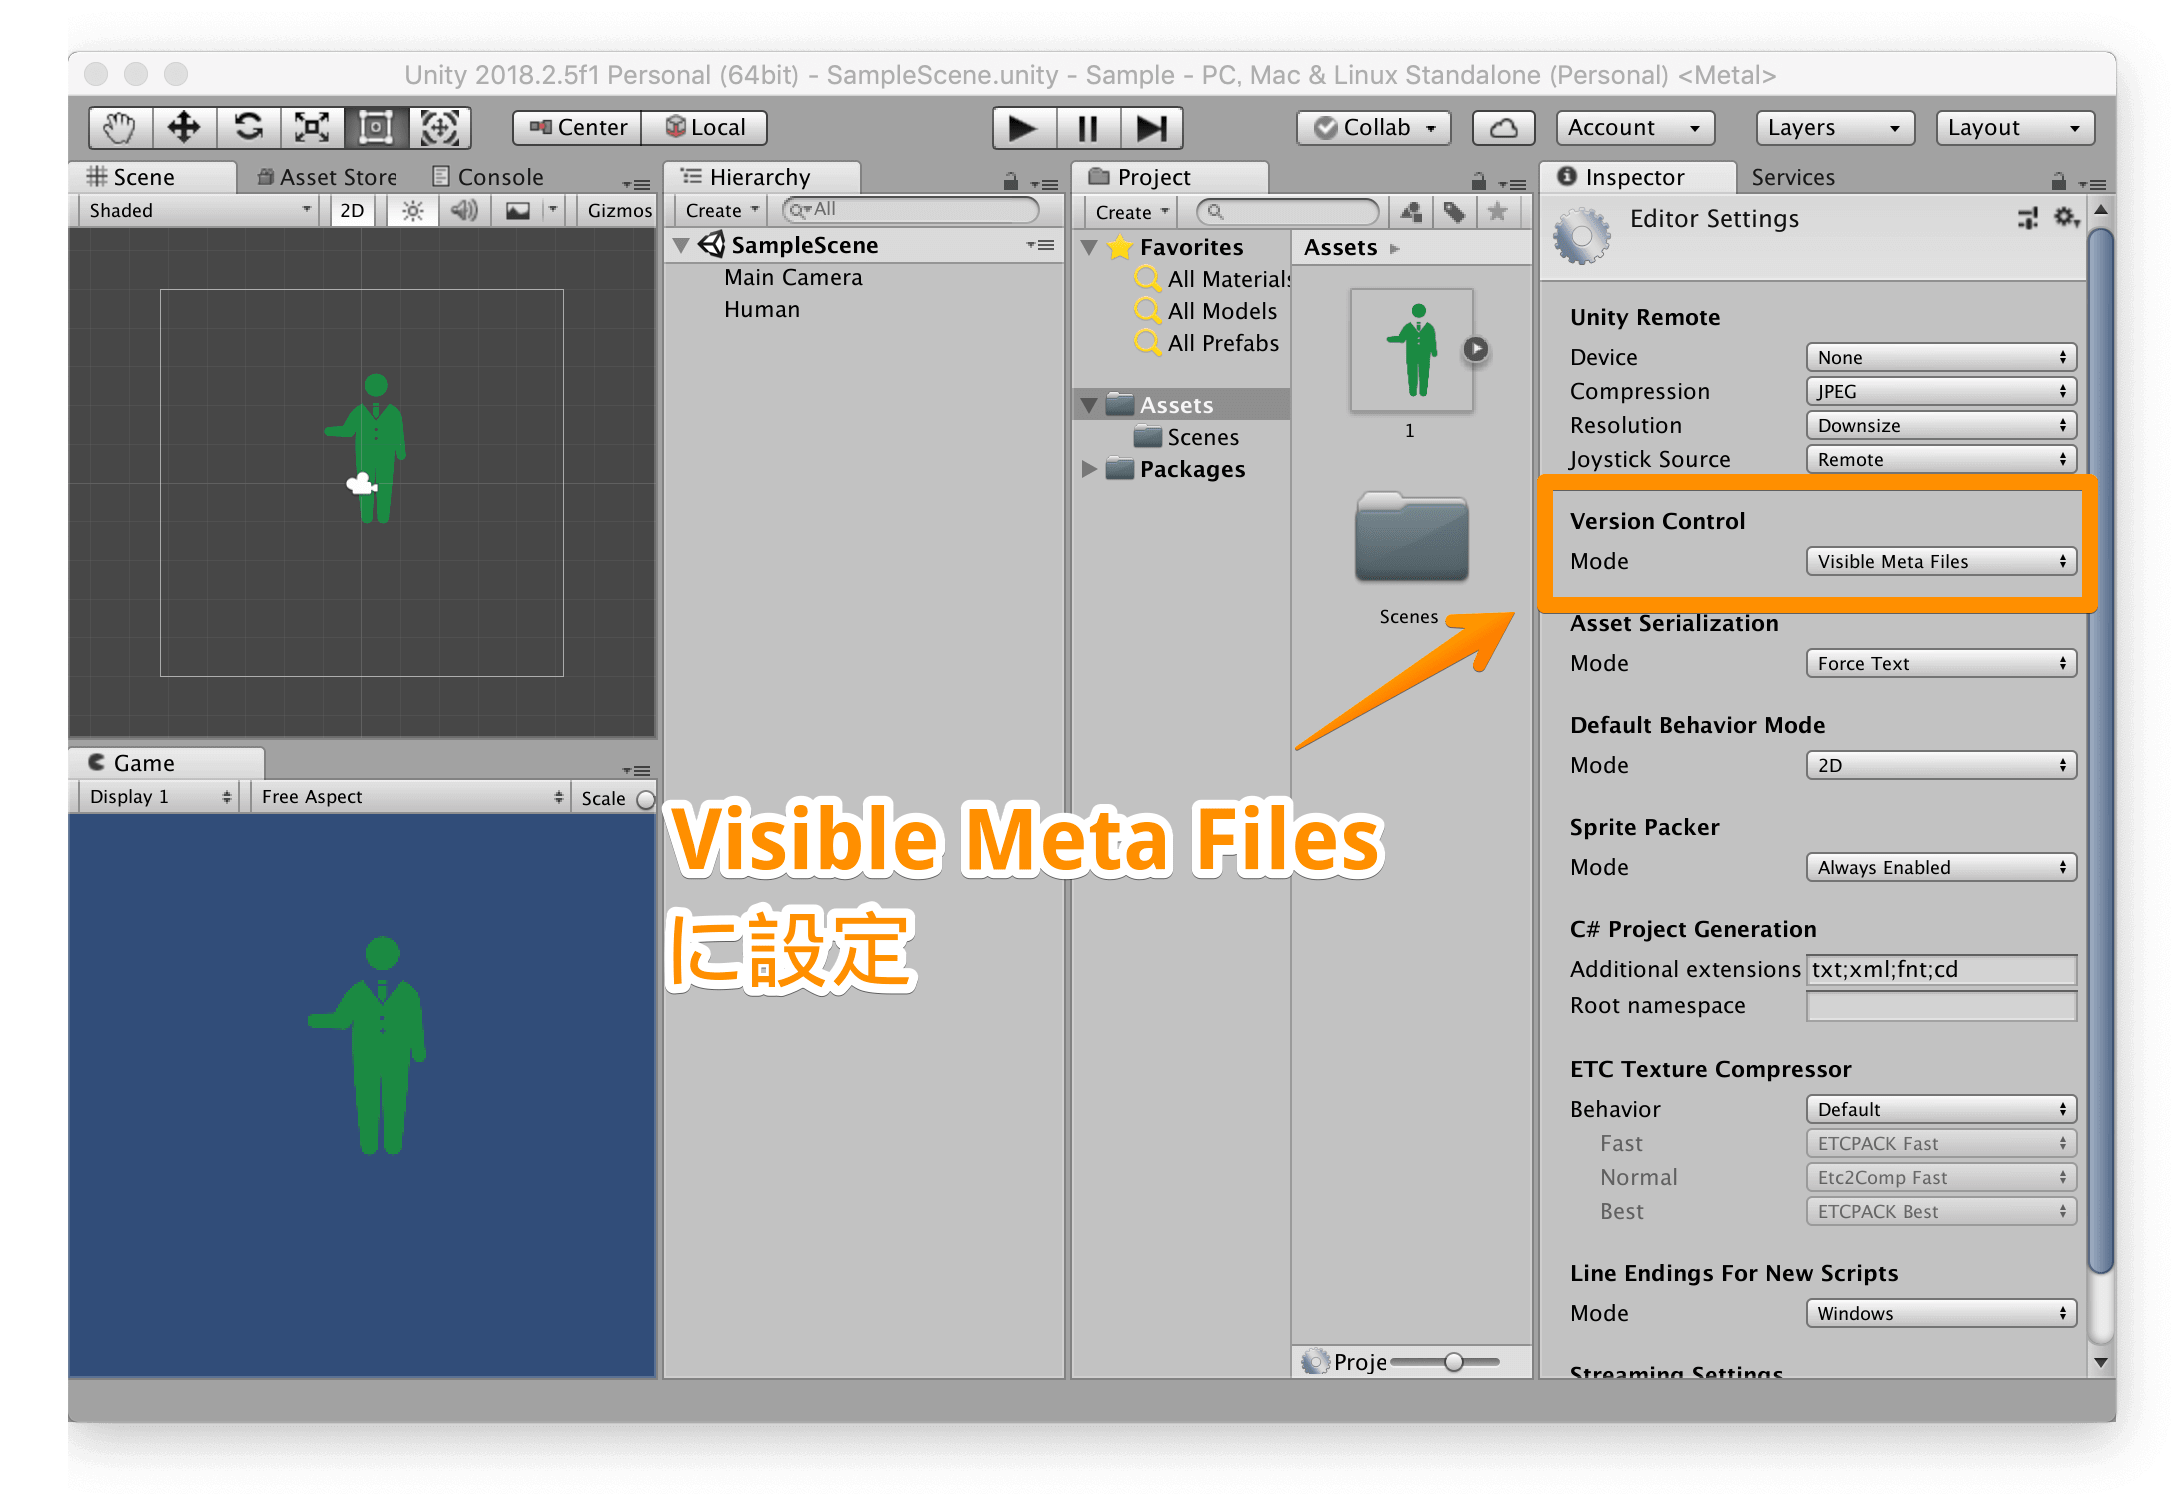 「Version Control」を「Visible Meta Files」にする